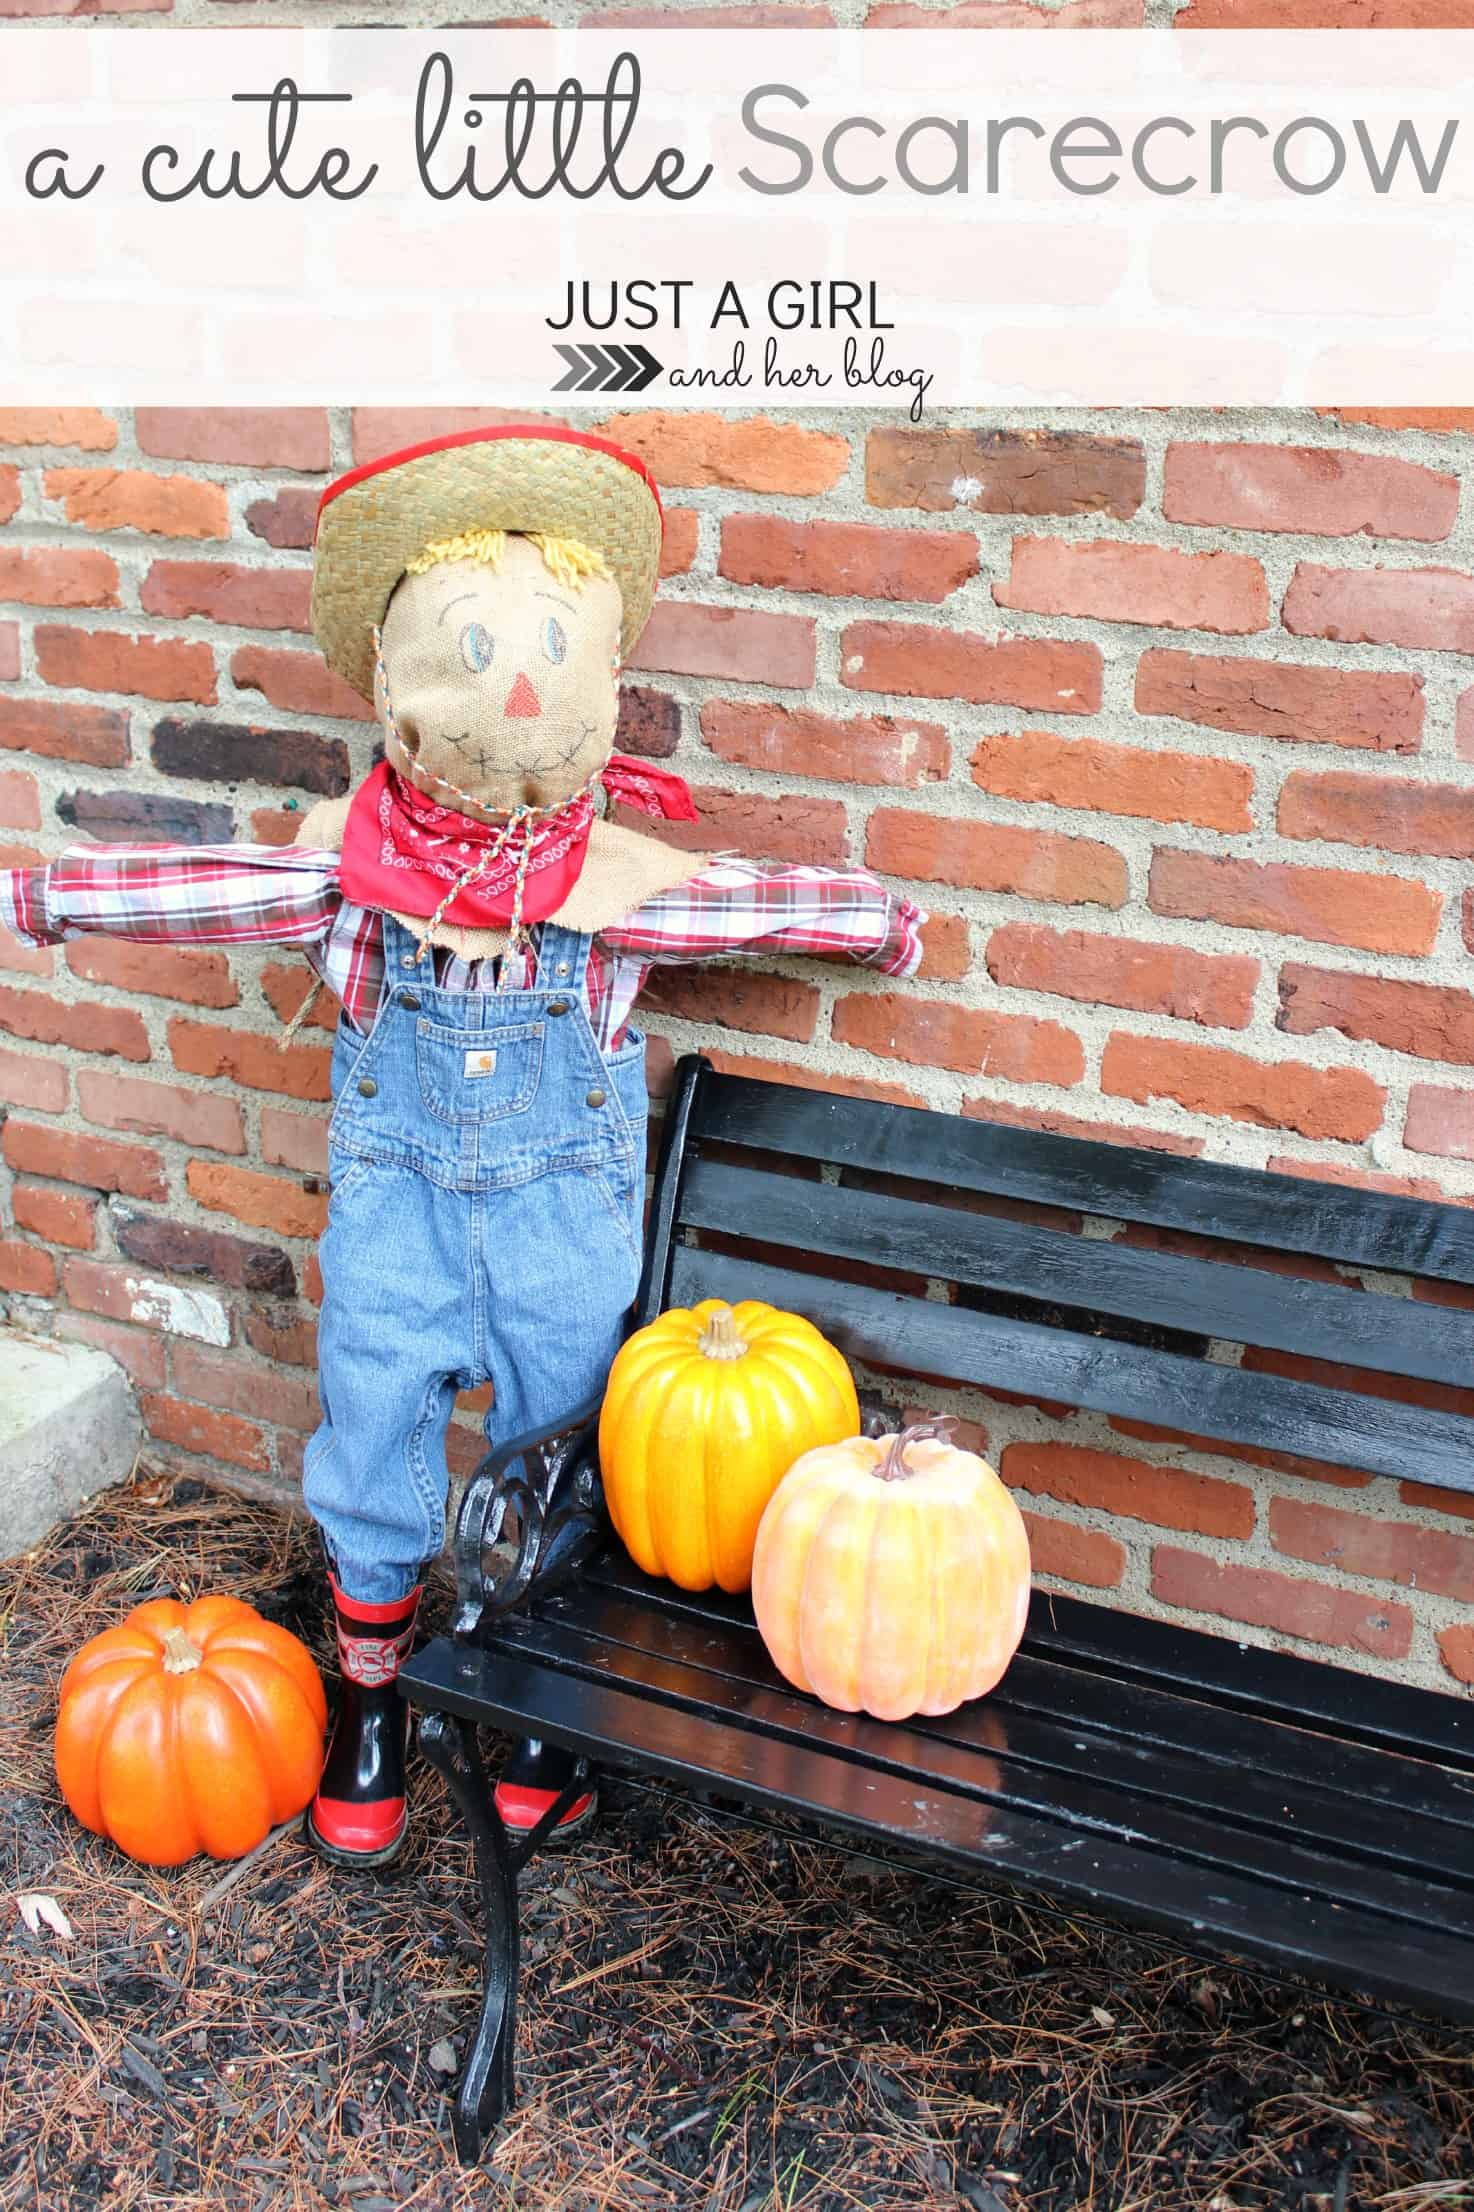 Kid scarecrow from hand me down clothes